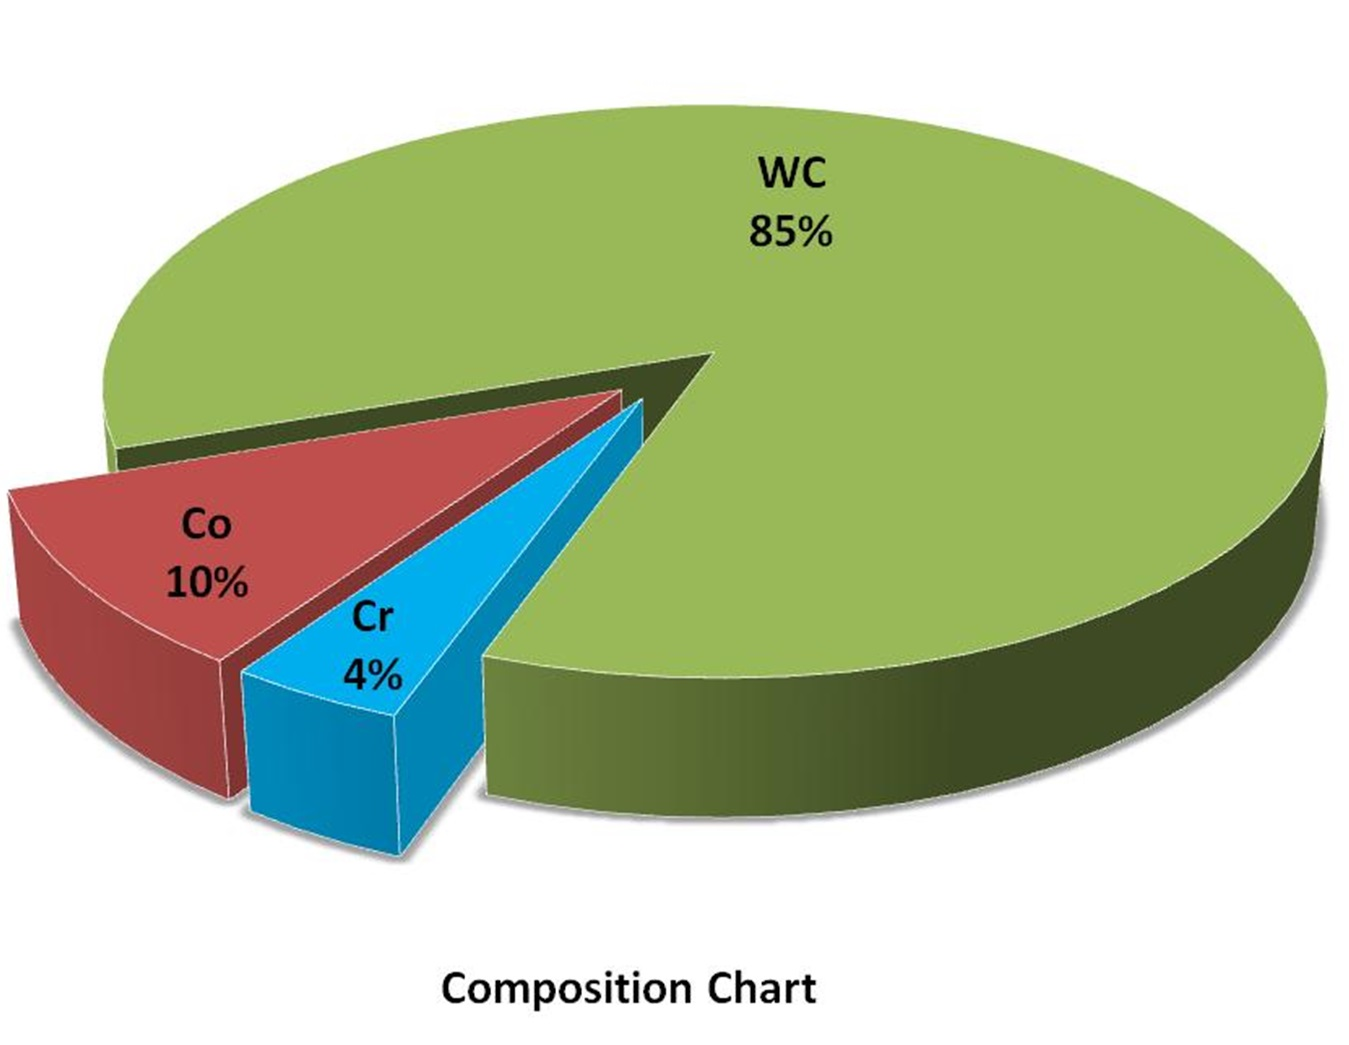 Composition Chart - WC/Co/Cr Alloy